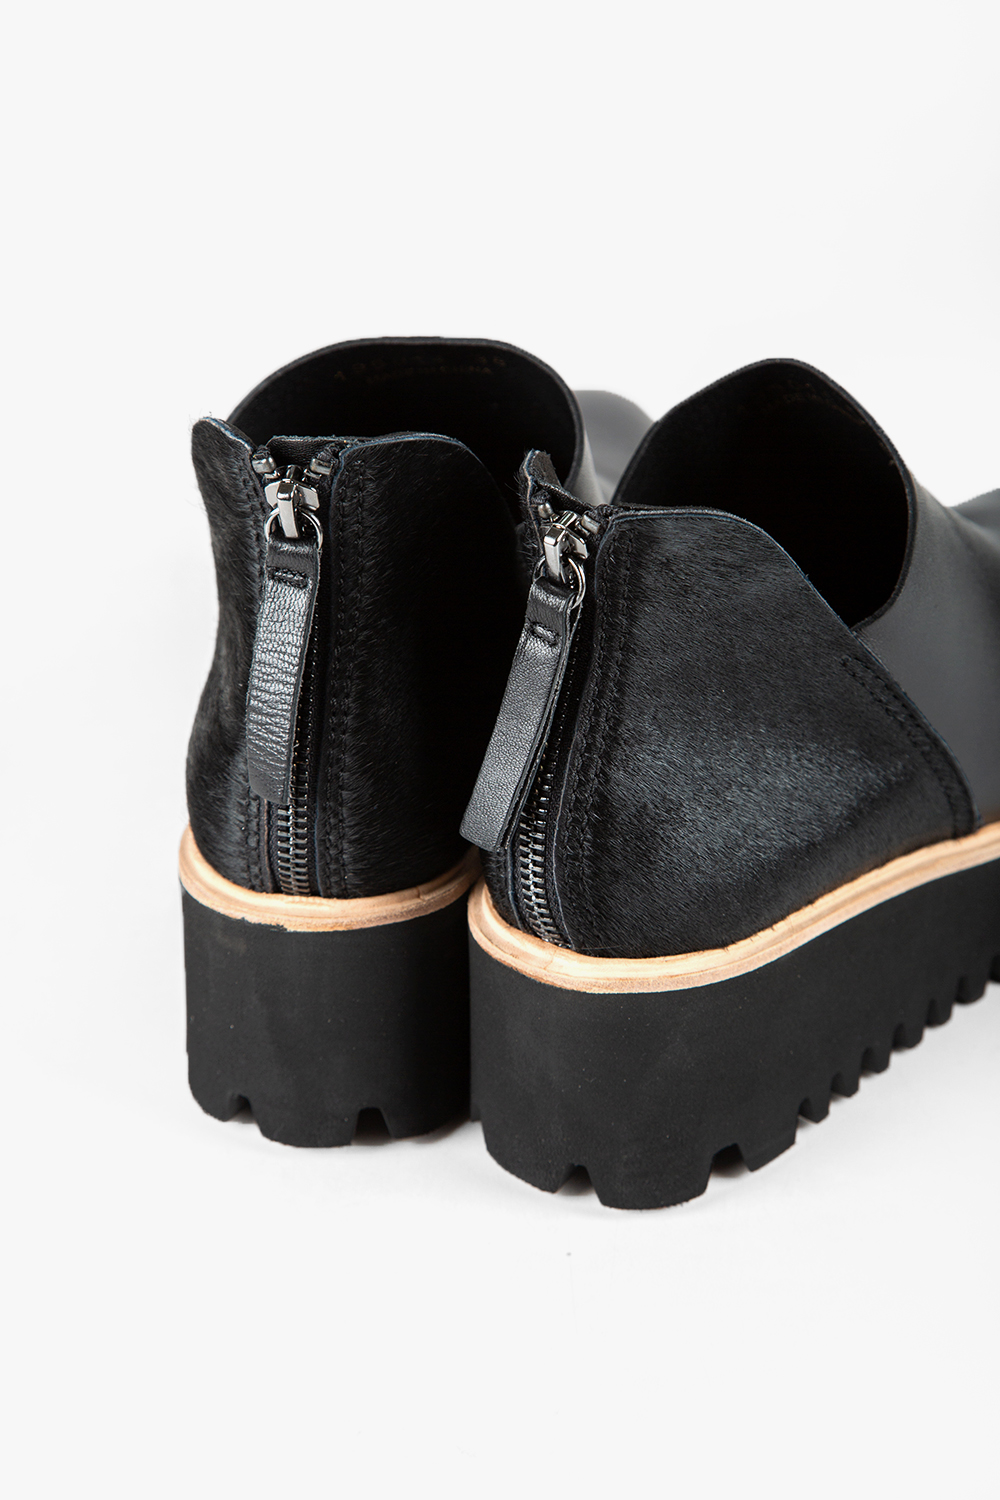 All Black Flatform Boot Women's Boot Nubuck Leather and Pony Hair Back | Ooh! Ooh! Shoes Women's Shoes and Clothing Boutique Naples, Charleston and Mashpee